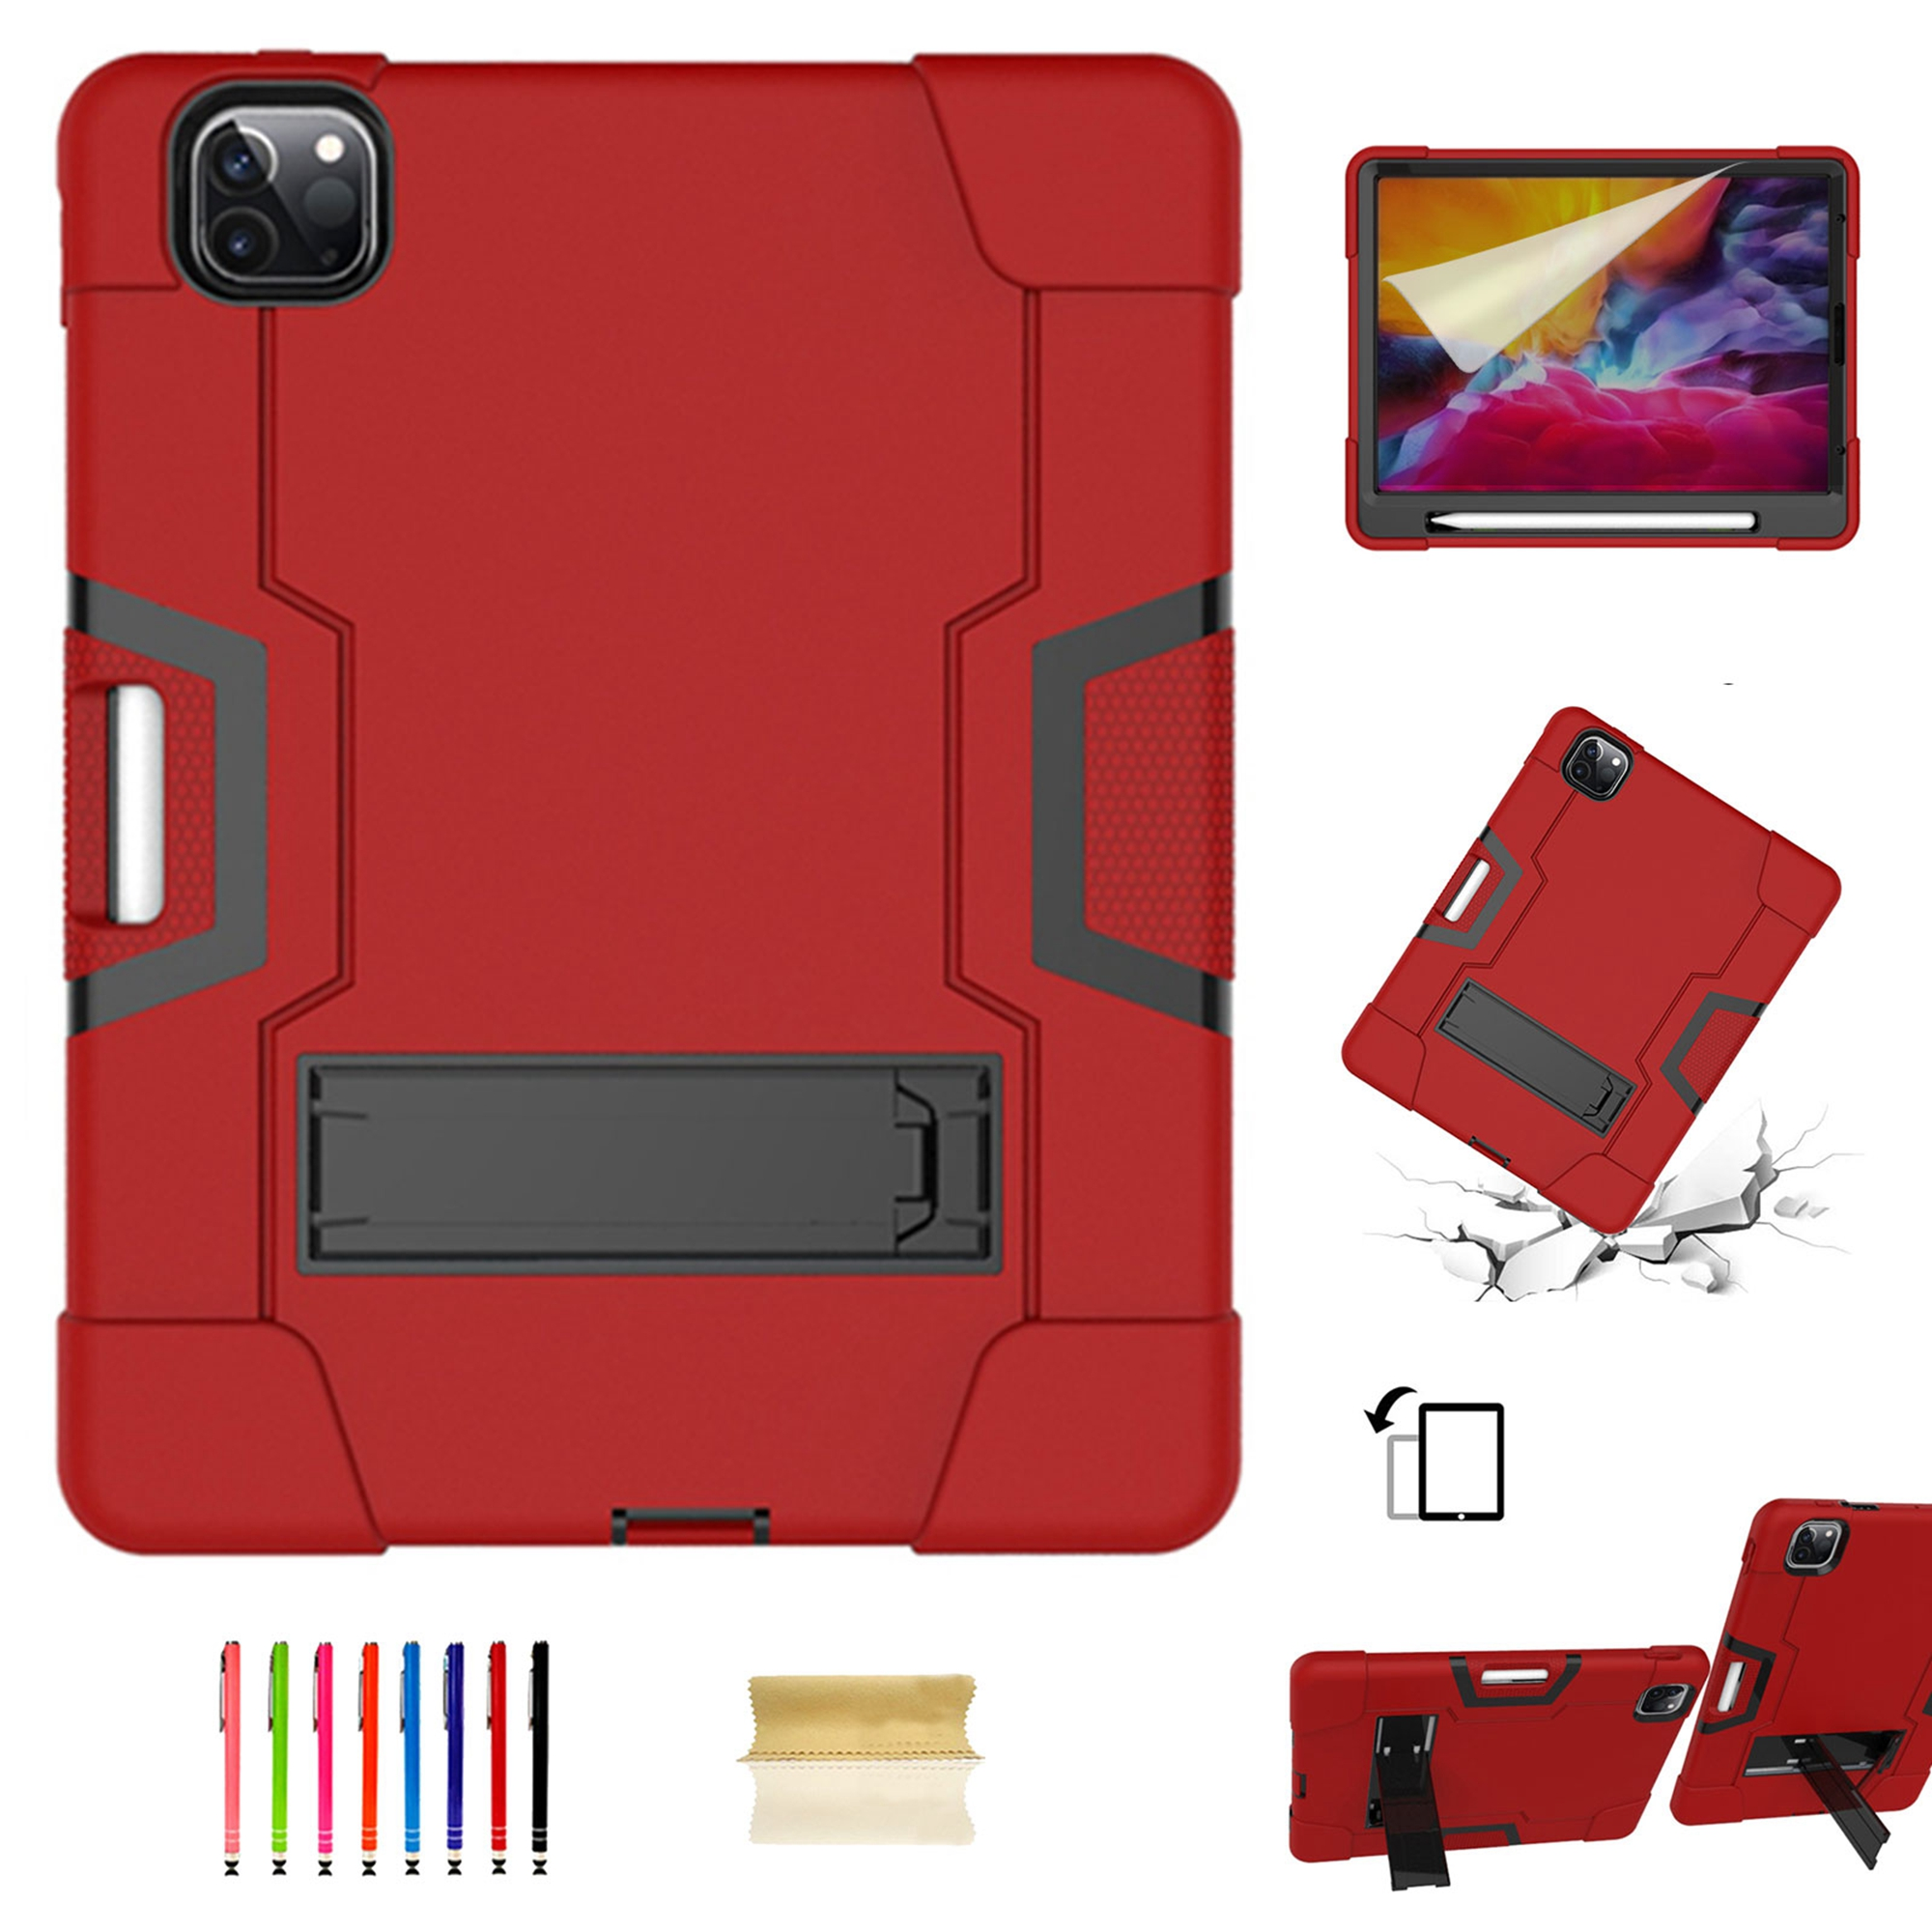 iPad Pro 11 inch 2nd Generation 2020 Shockproof Case with ...